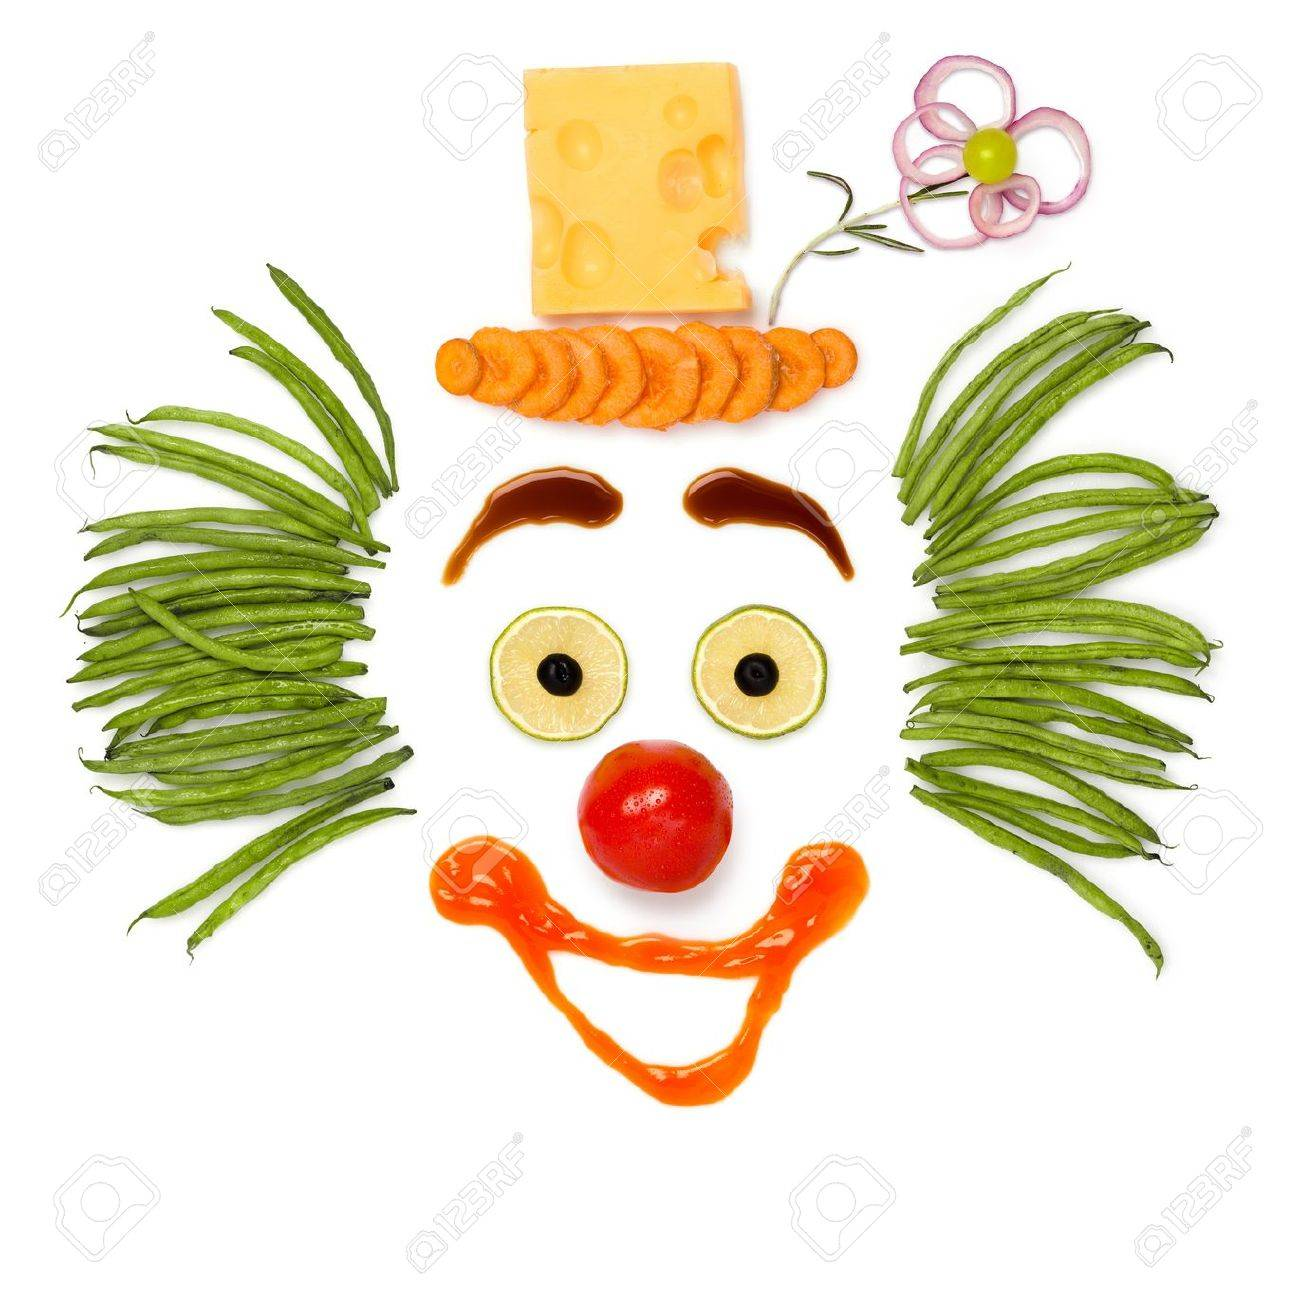 Vegetable Faces Images & Stock Pictures. Royalty Free Vegetable ...